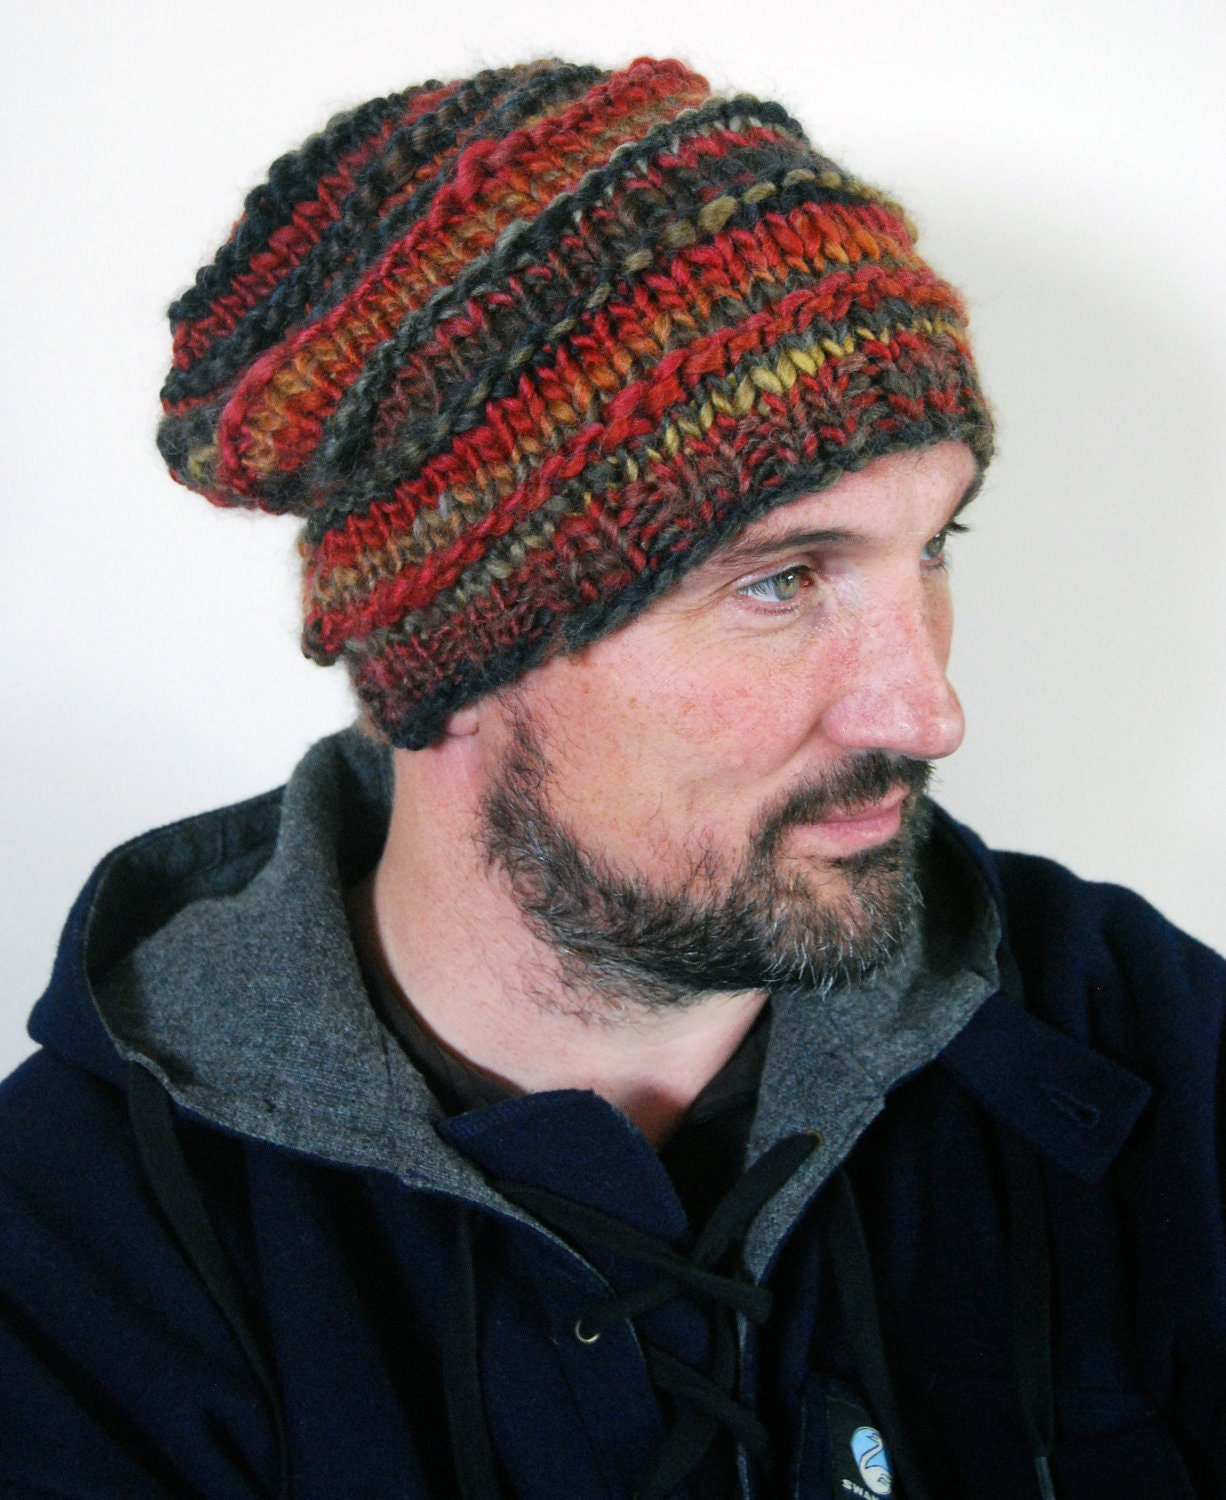 Bills Rustic Beanie knitting pattern .pdf